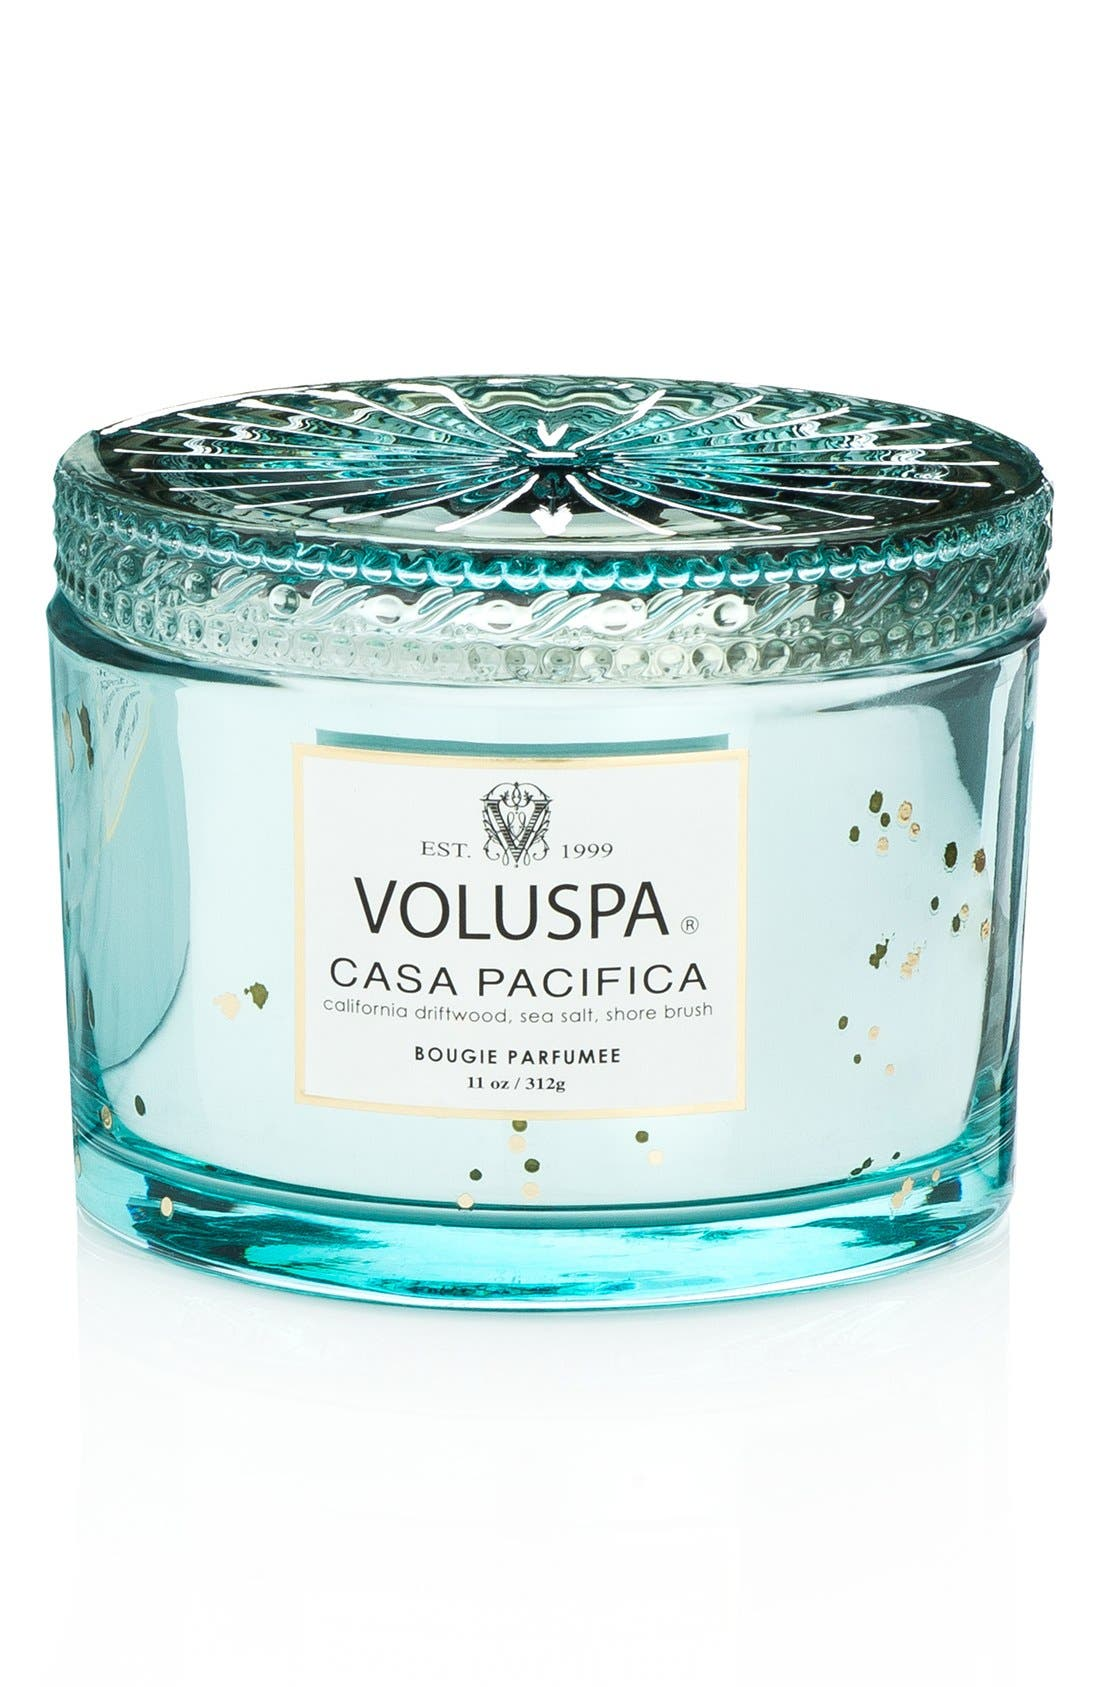 Voluspa 'Maison Blanc - Casa Pacifica' Boxed Lidded Candle